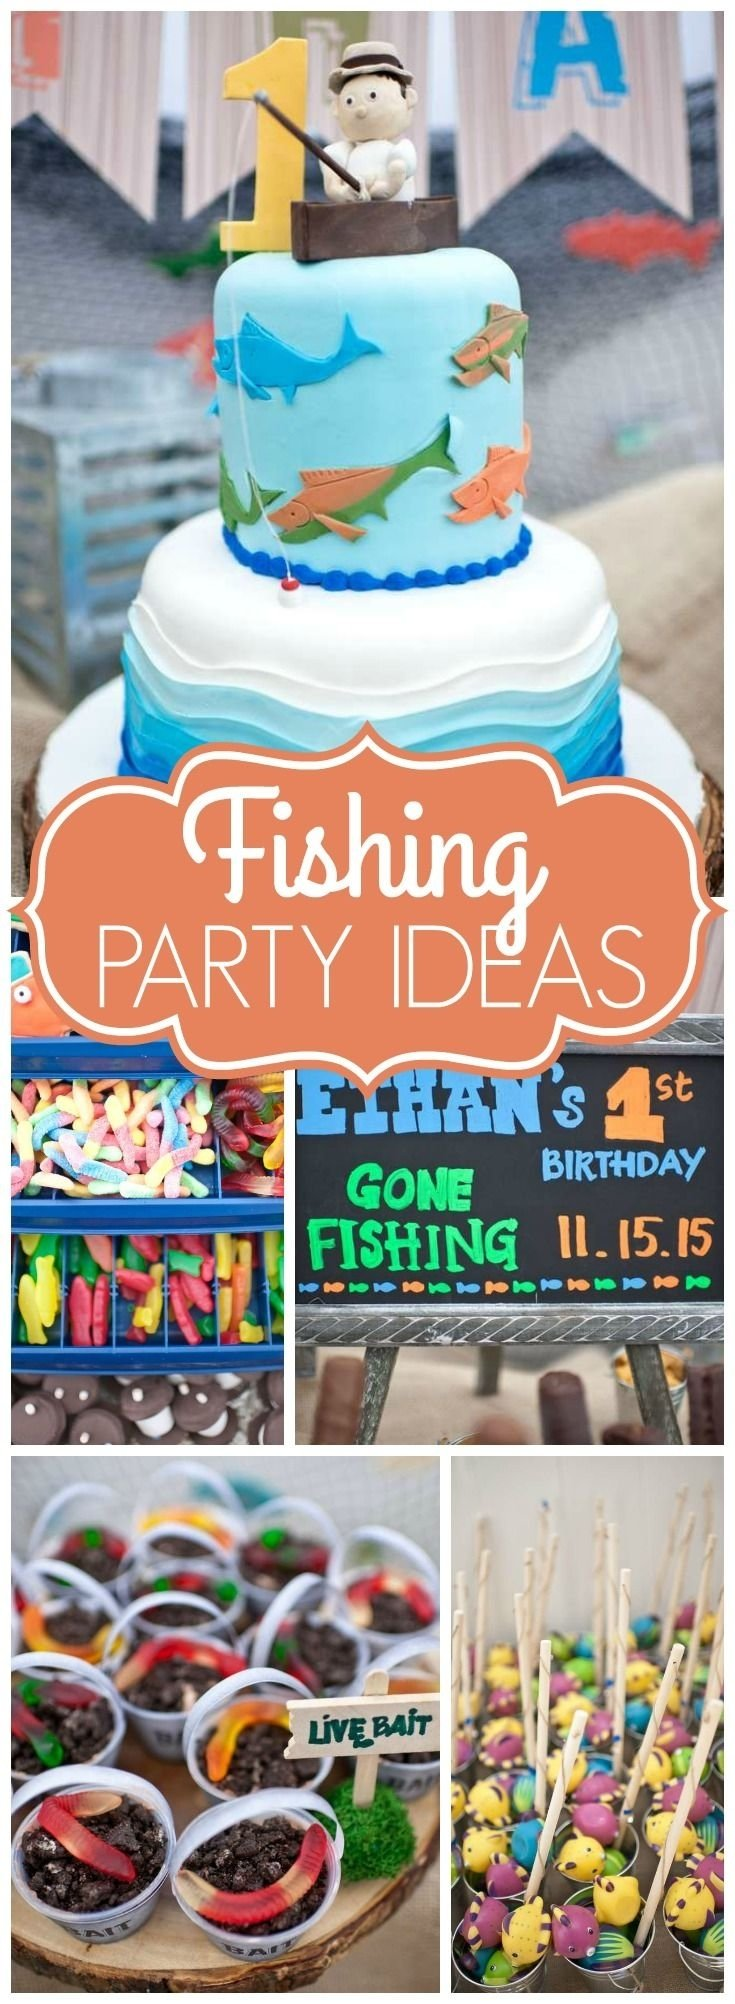 10 Most Popular Unique First Birthday Party Ideas For Boys themes birthday 1st bday party ideas for baby boy in conjunction